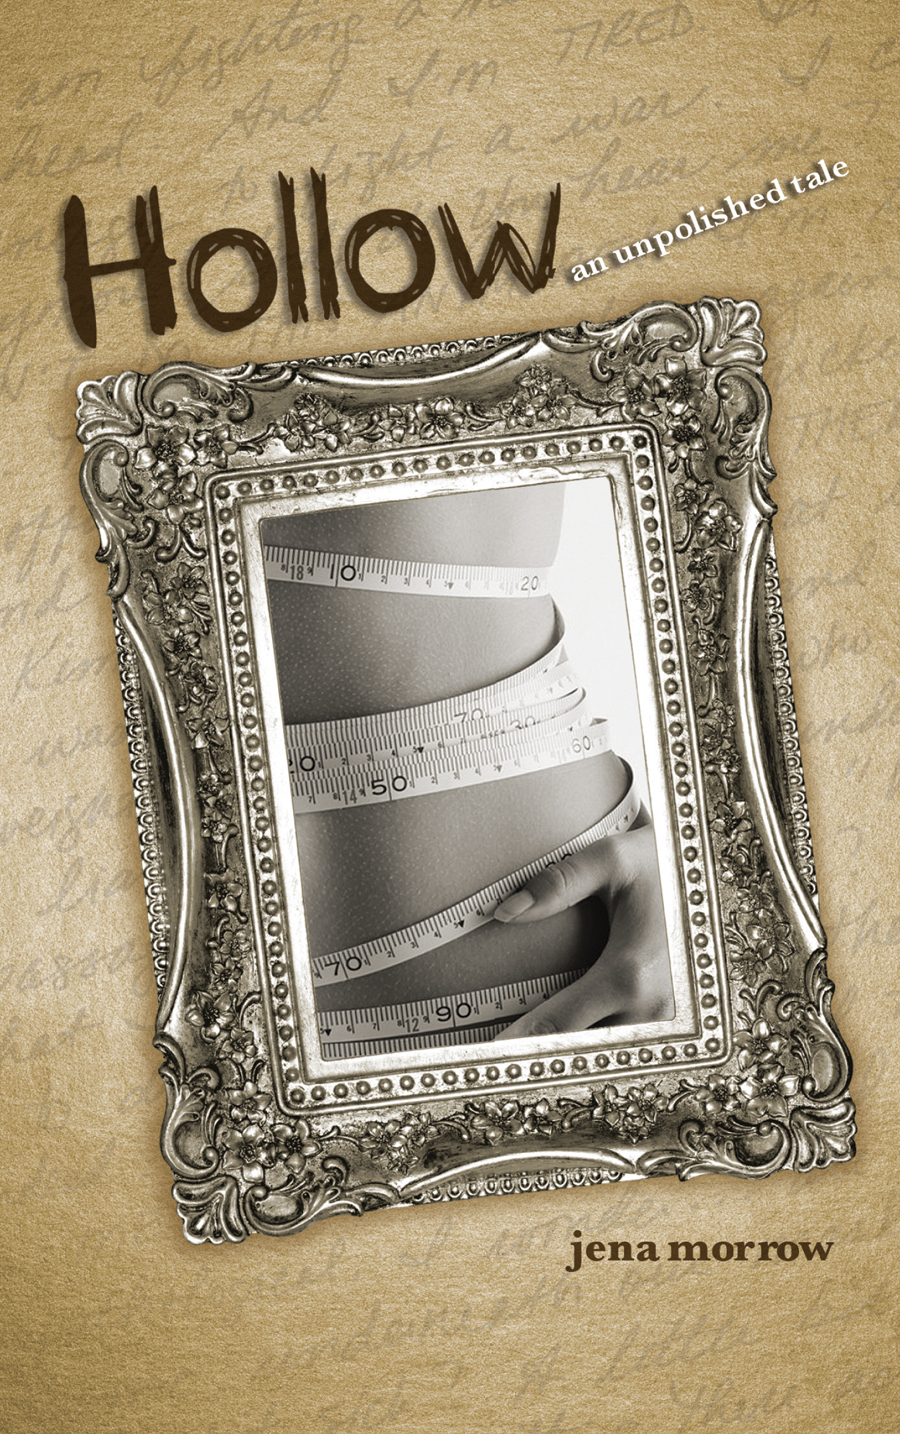 Hollow An Unpolished Tale by Jena Morrow